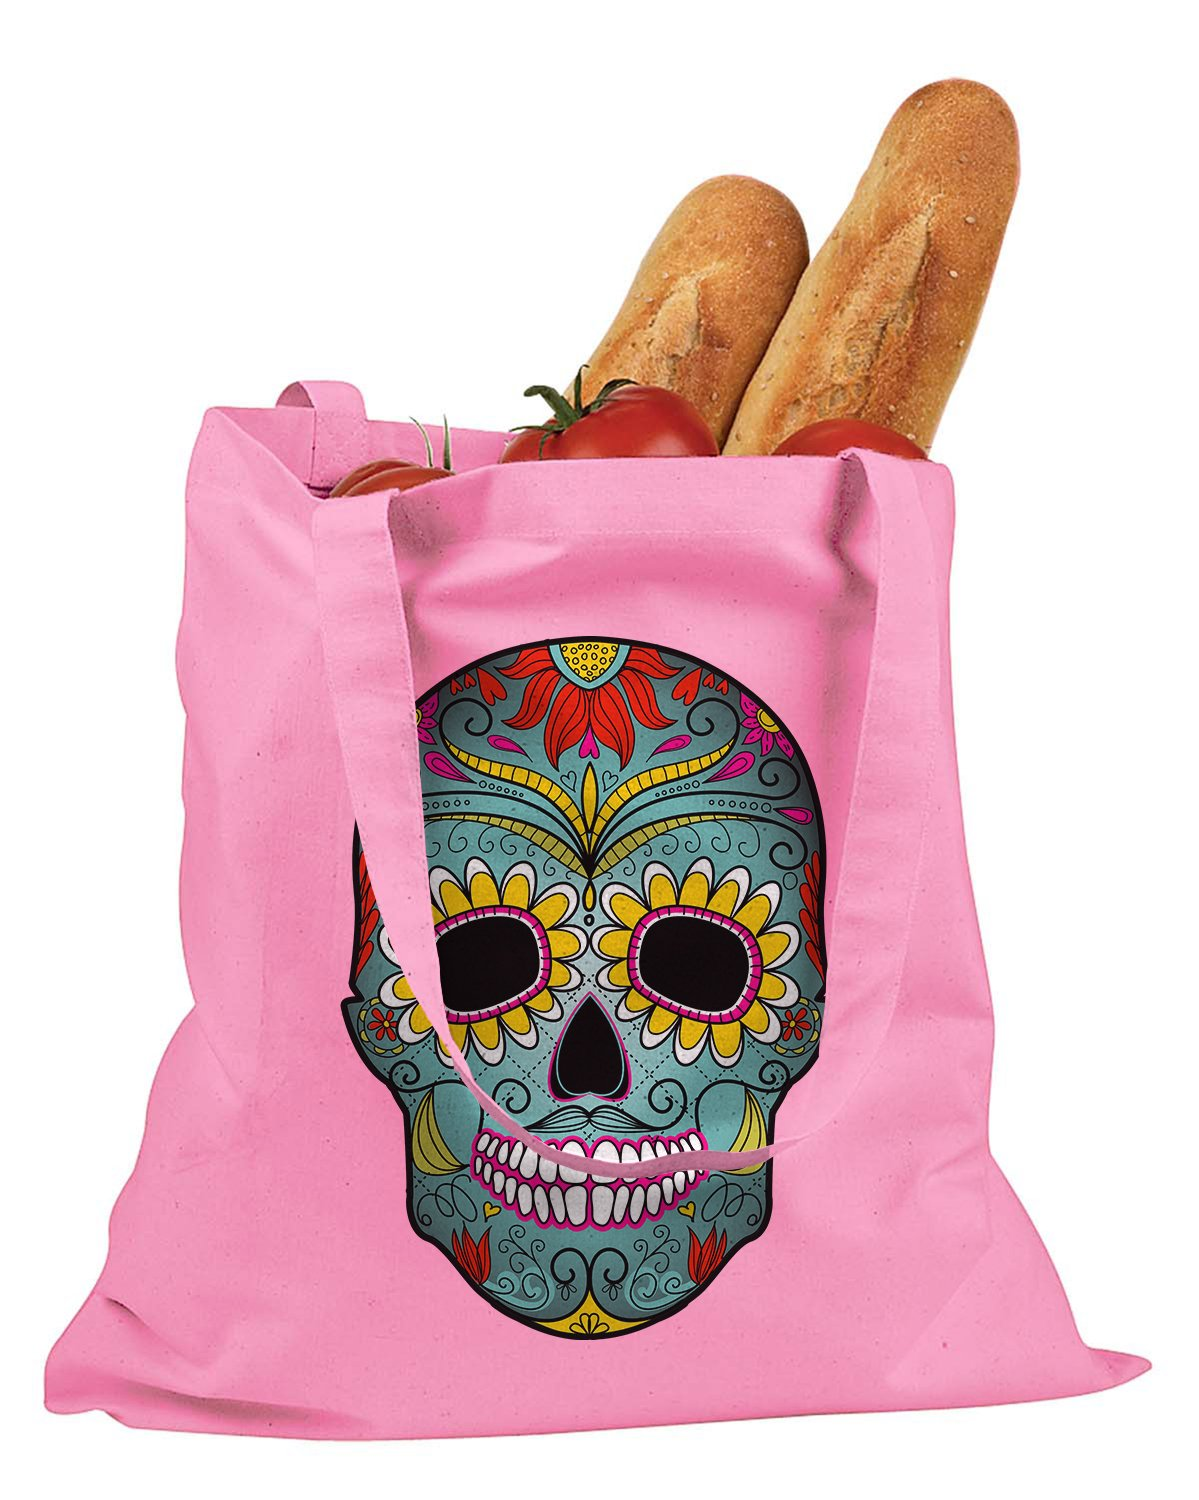 The T-shirt Press Day Of The Dead Mexican Mask Tote Bag (Pink)